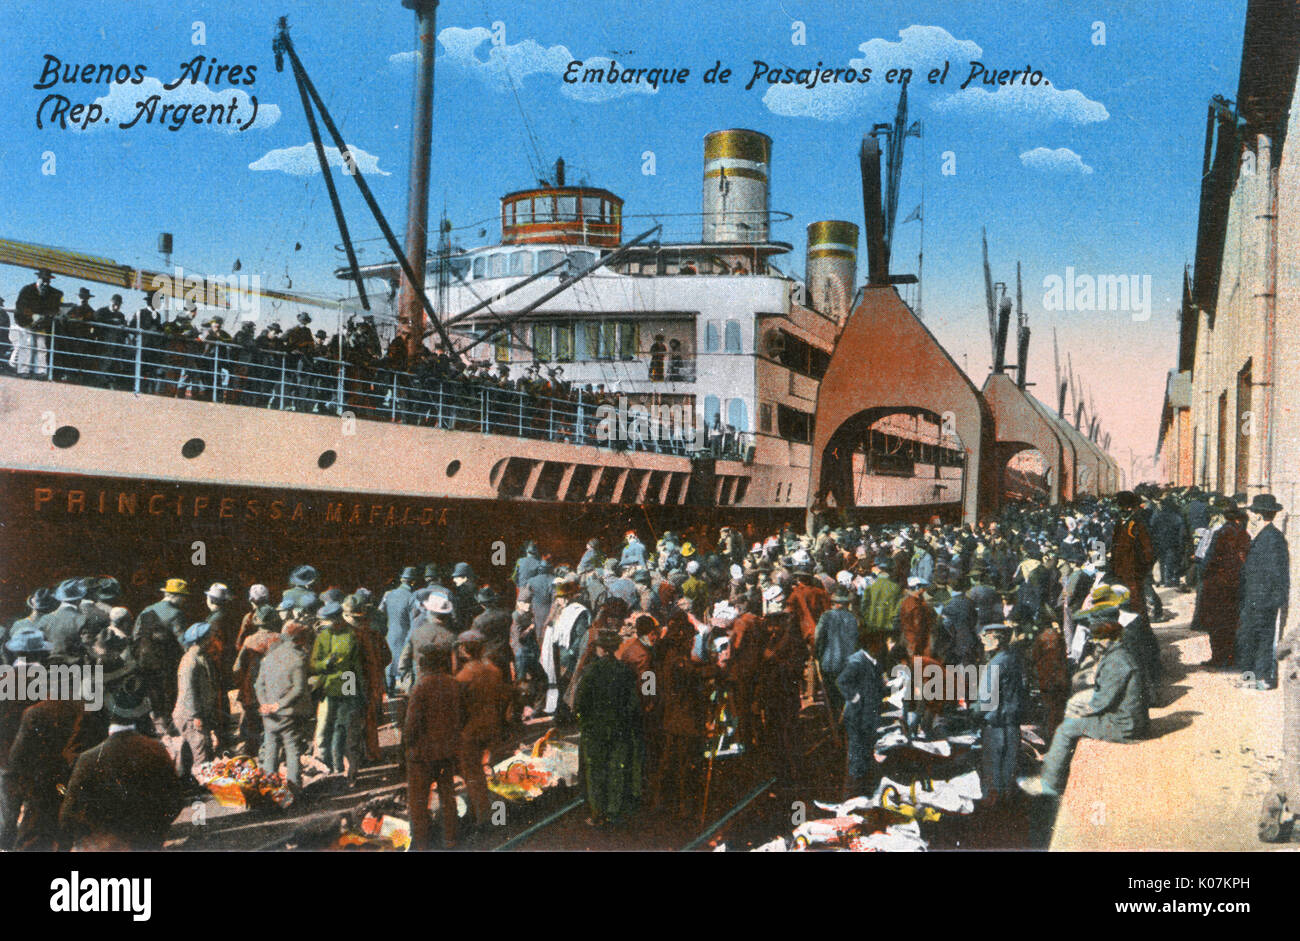 SS Principessa Mafalda, Italian ocean liner, at Buenos Aires, Argentina, South America, with crowds of people on Stock Photo